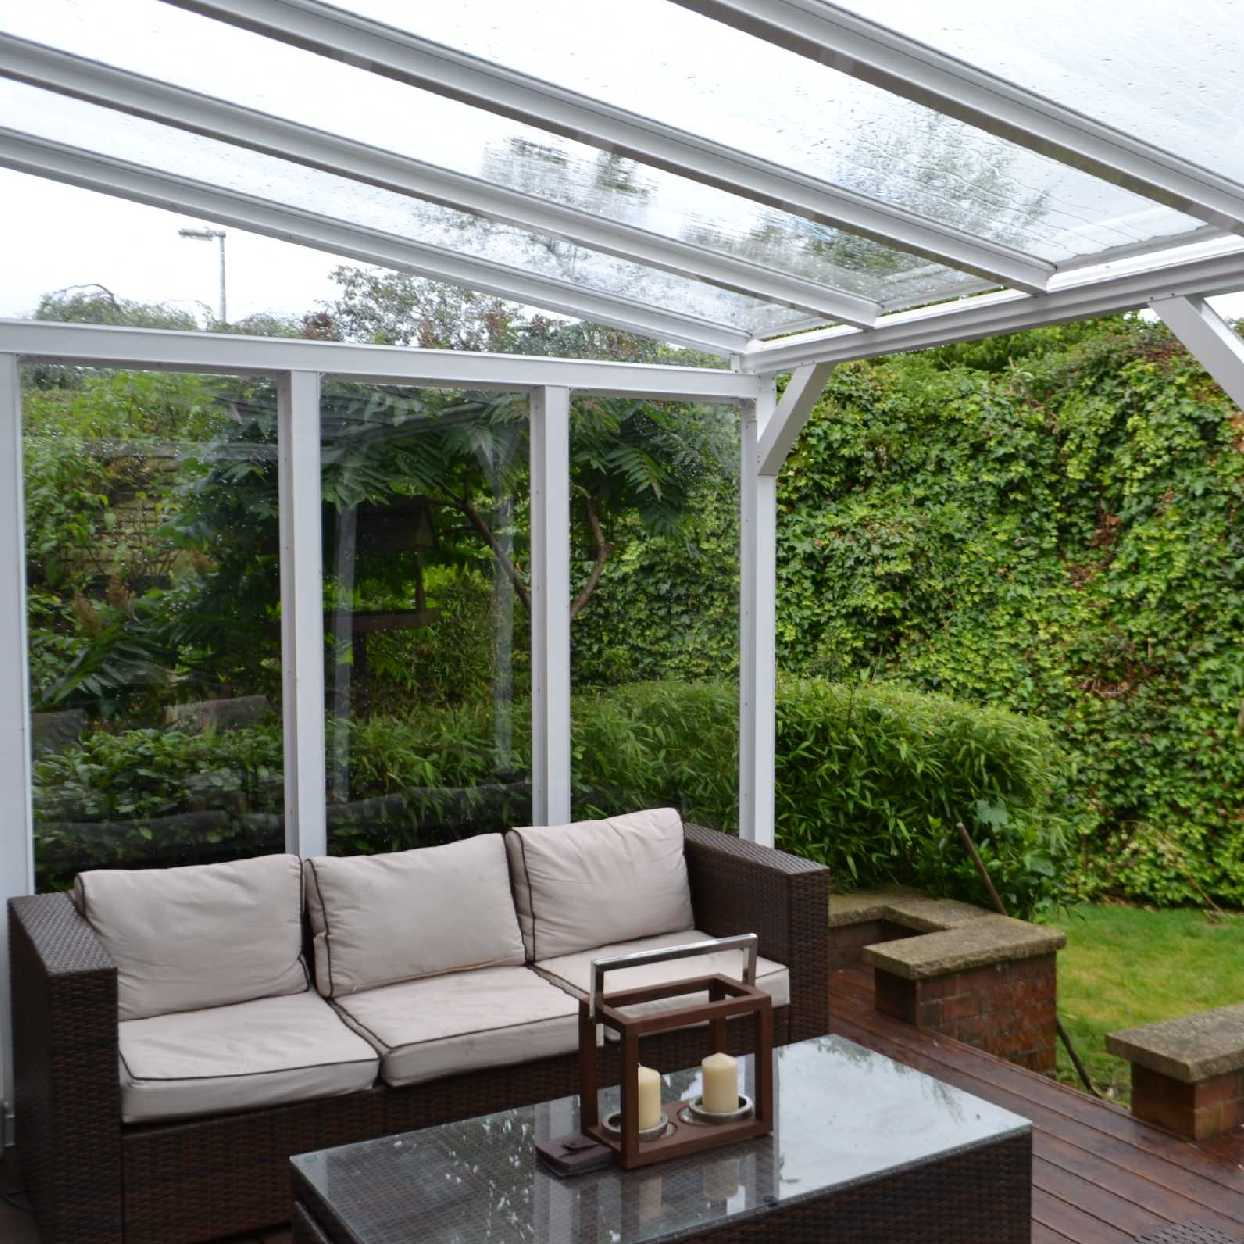 Great selection of Omega Smart White Lean-To Canopy with 16mm Polycarbonate Glazing - 8.4m (W) x 3.5m (P), (4) Supporting Posts